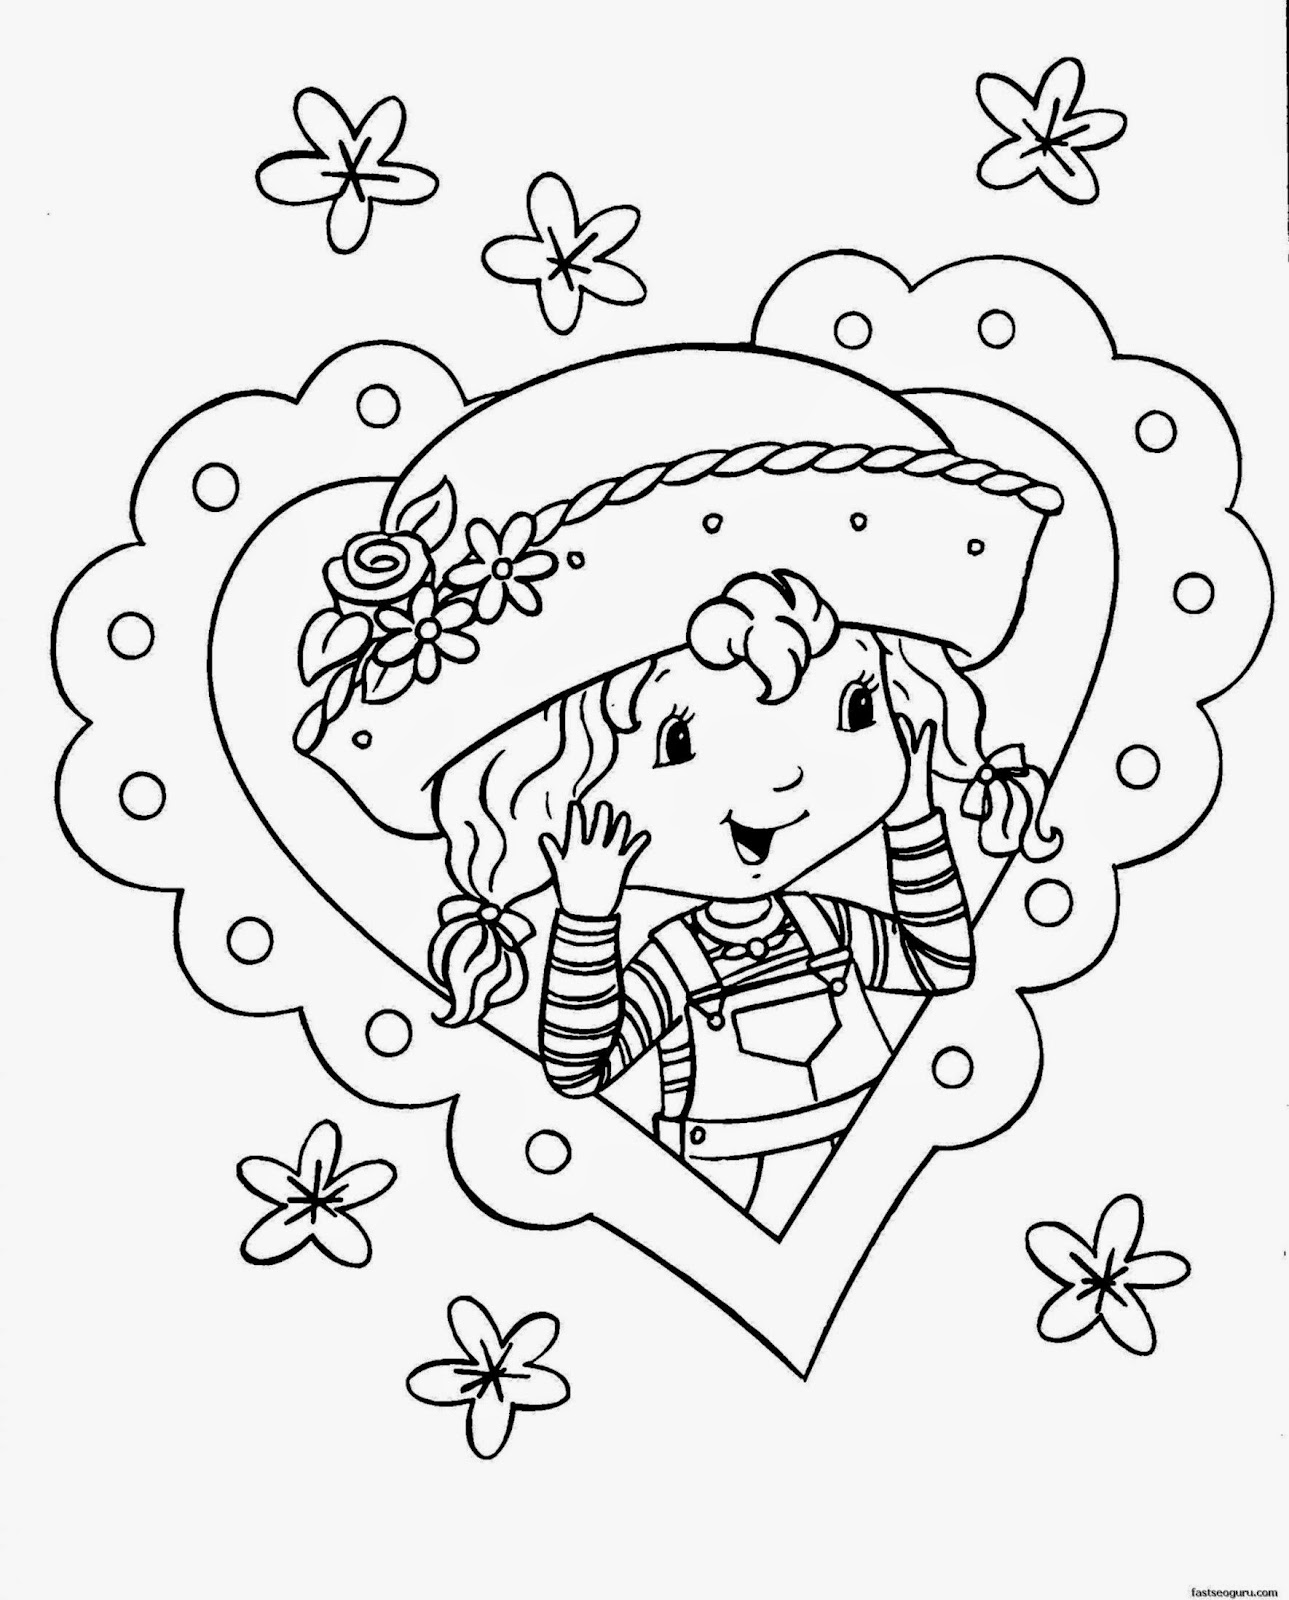 Printable coloring pages for girls free coloring sheet for Free printable coloring pages for girls